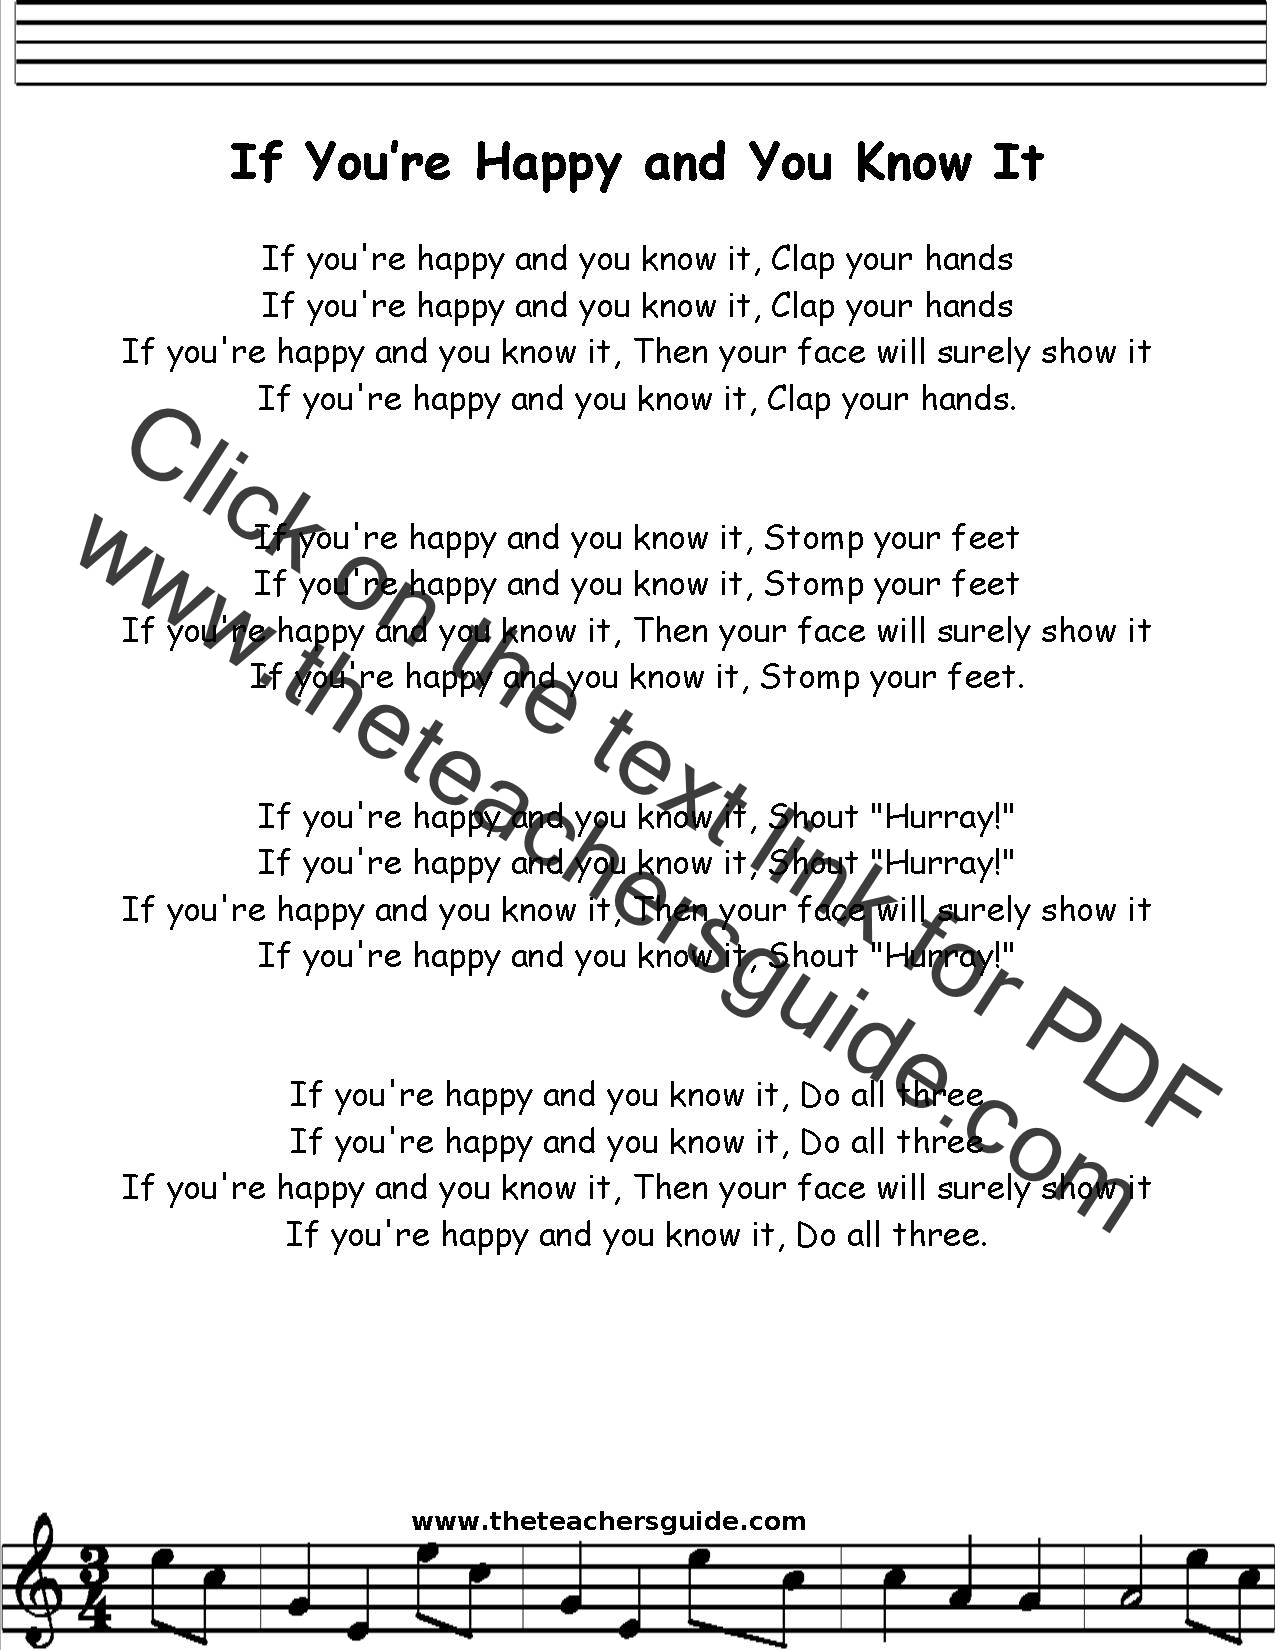 If You Re Happy And You Know It Lyrics Printout Midi And Video